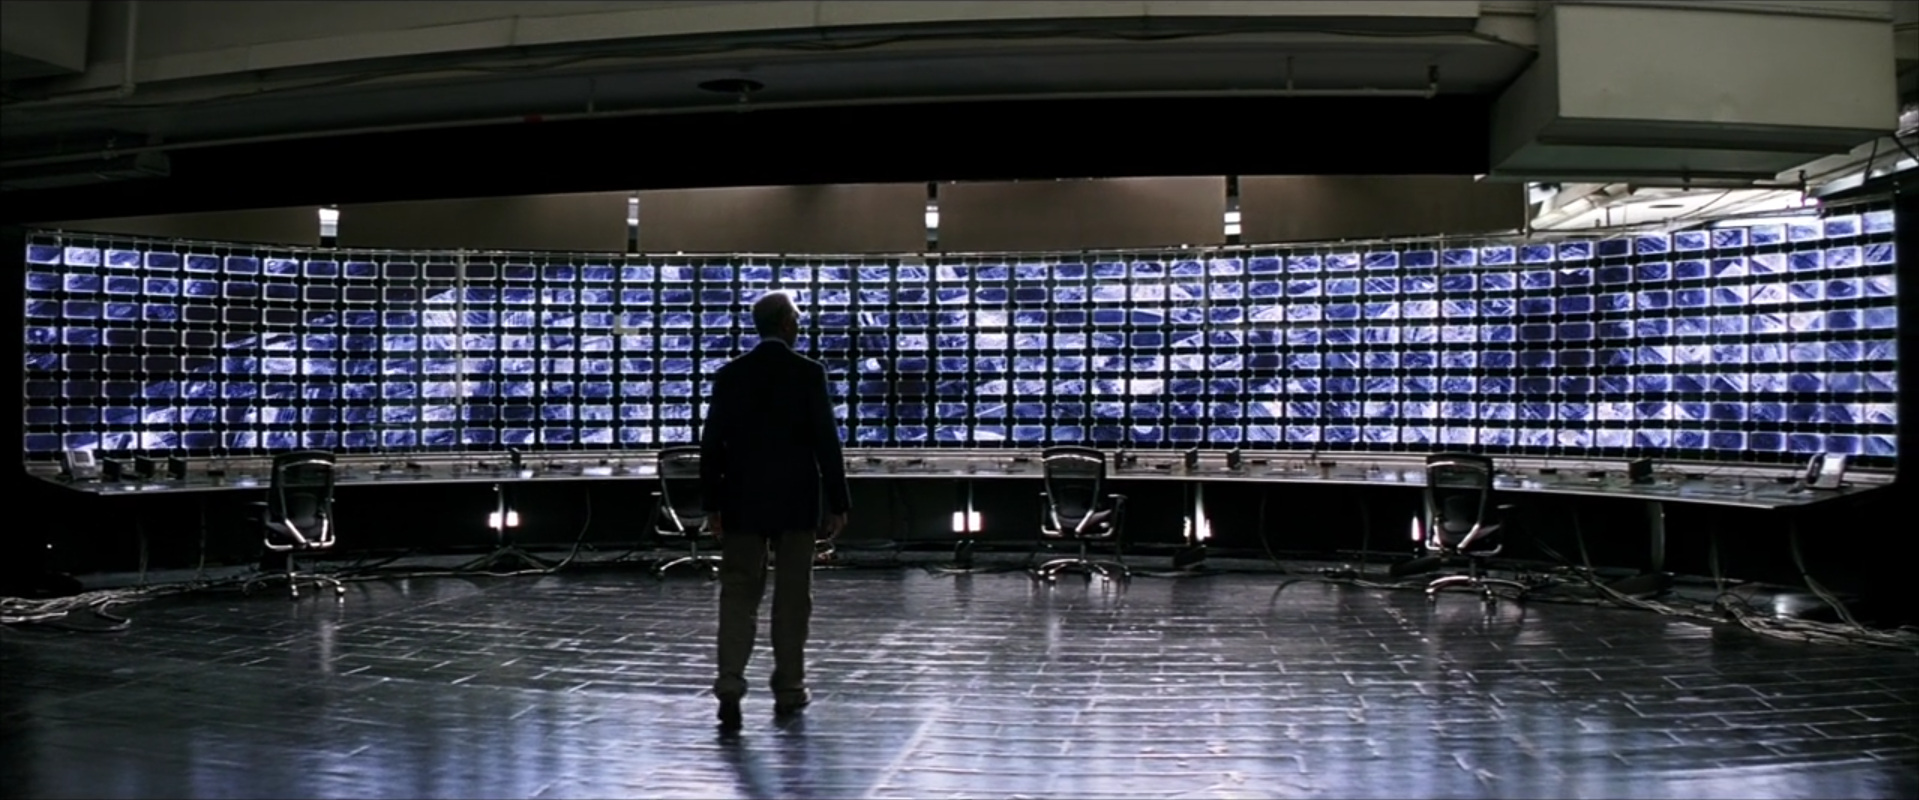 """The Dark Knight  (2008): Batman adopts the Bush administration's strategies for waging the """"global war on terror,"""" here with massive electronic eavesdropping"""